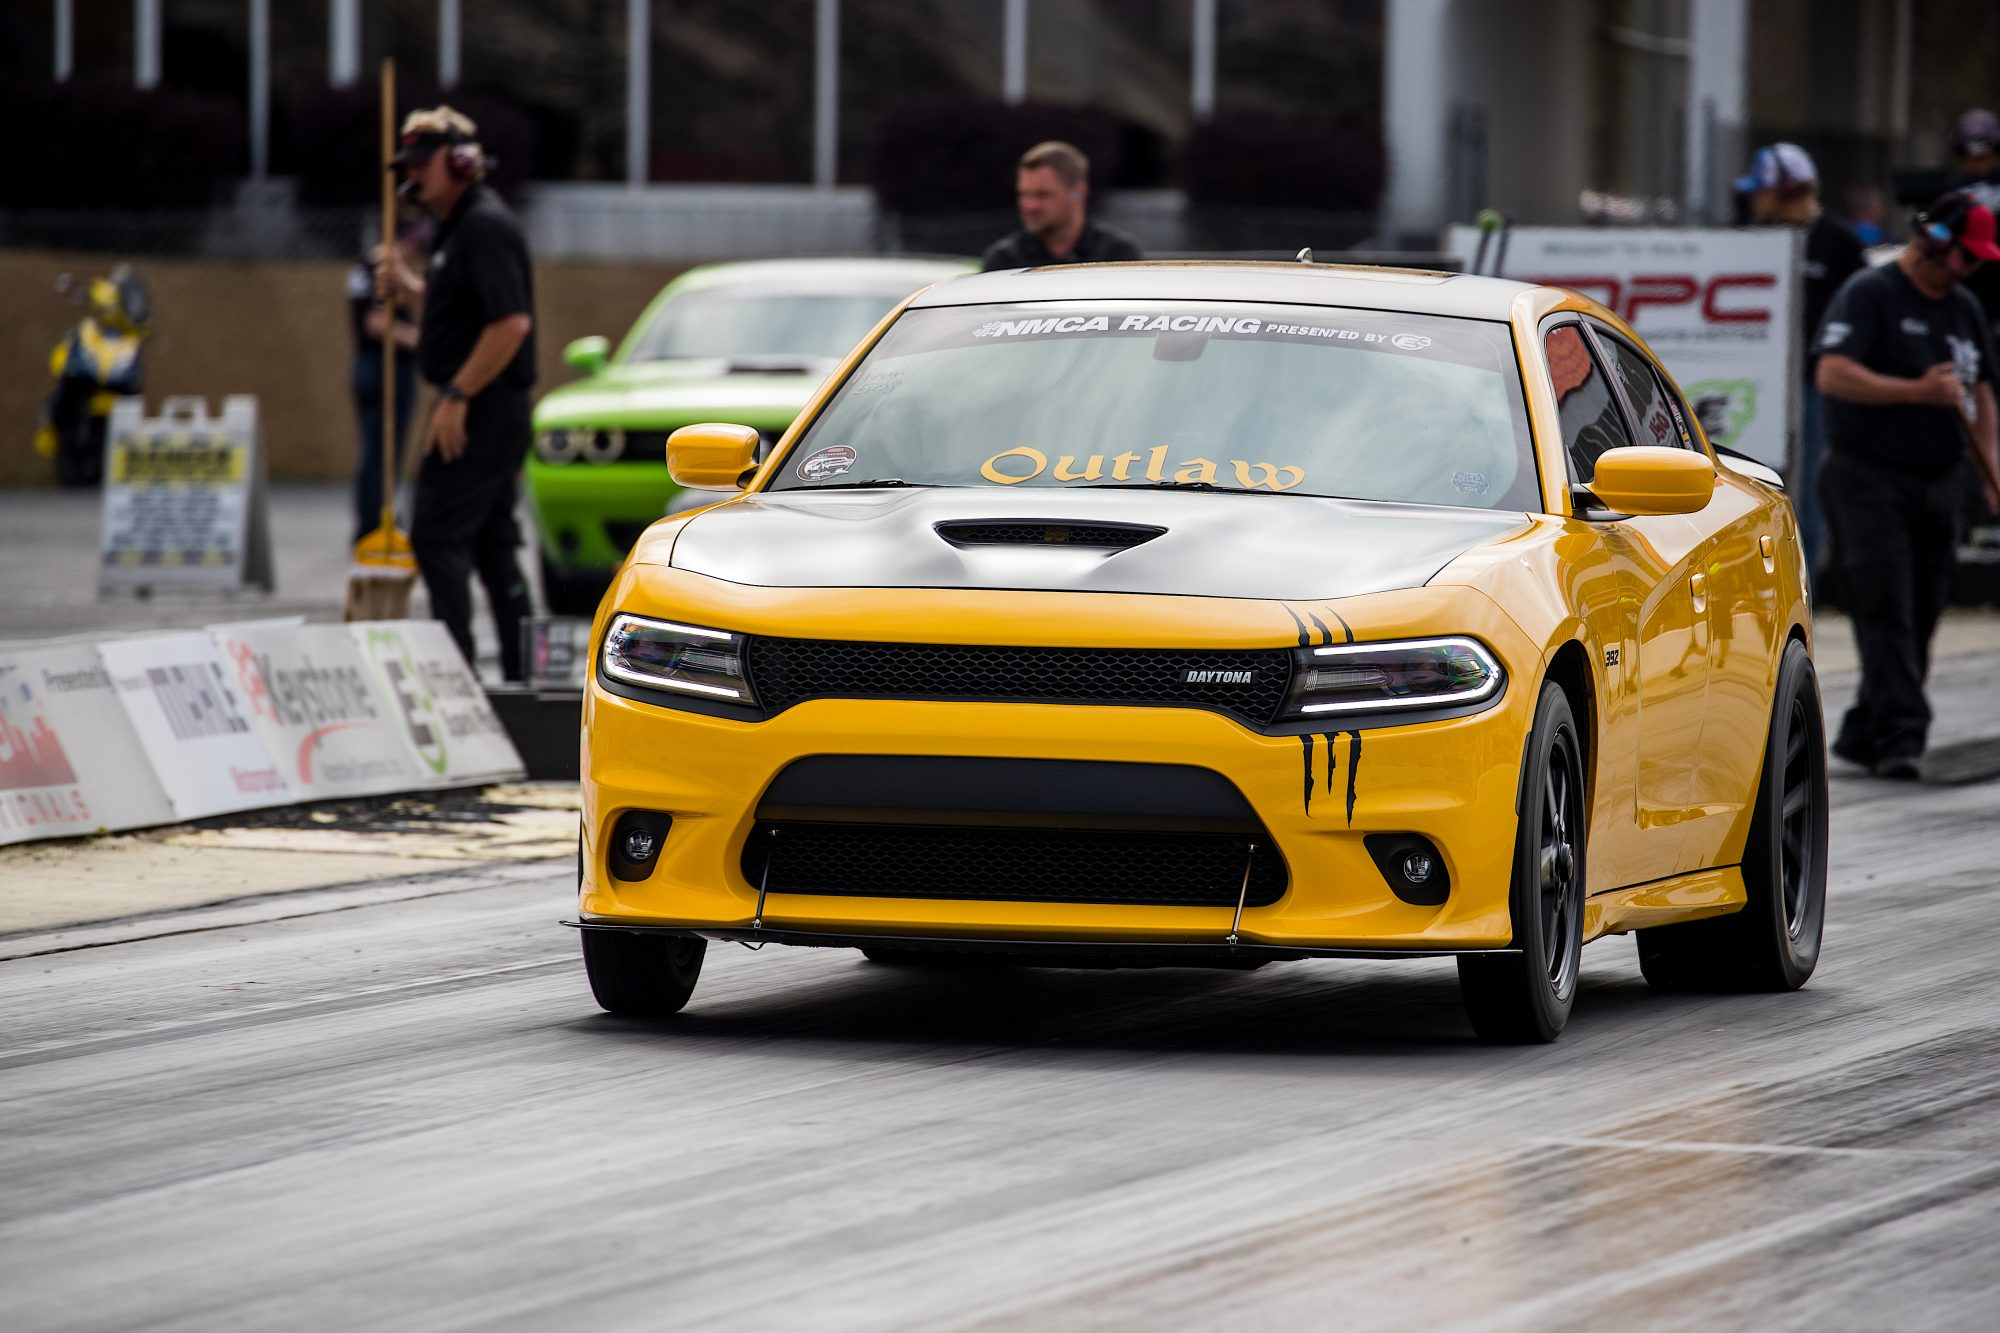 Yellow Dodge Charger drag racing at NMCA event